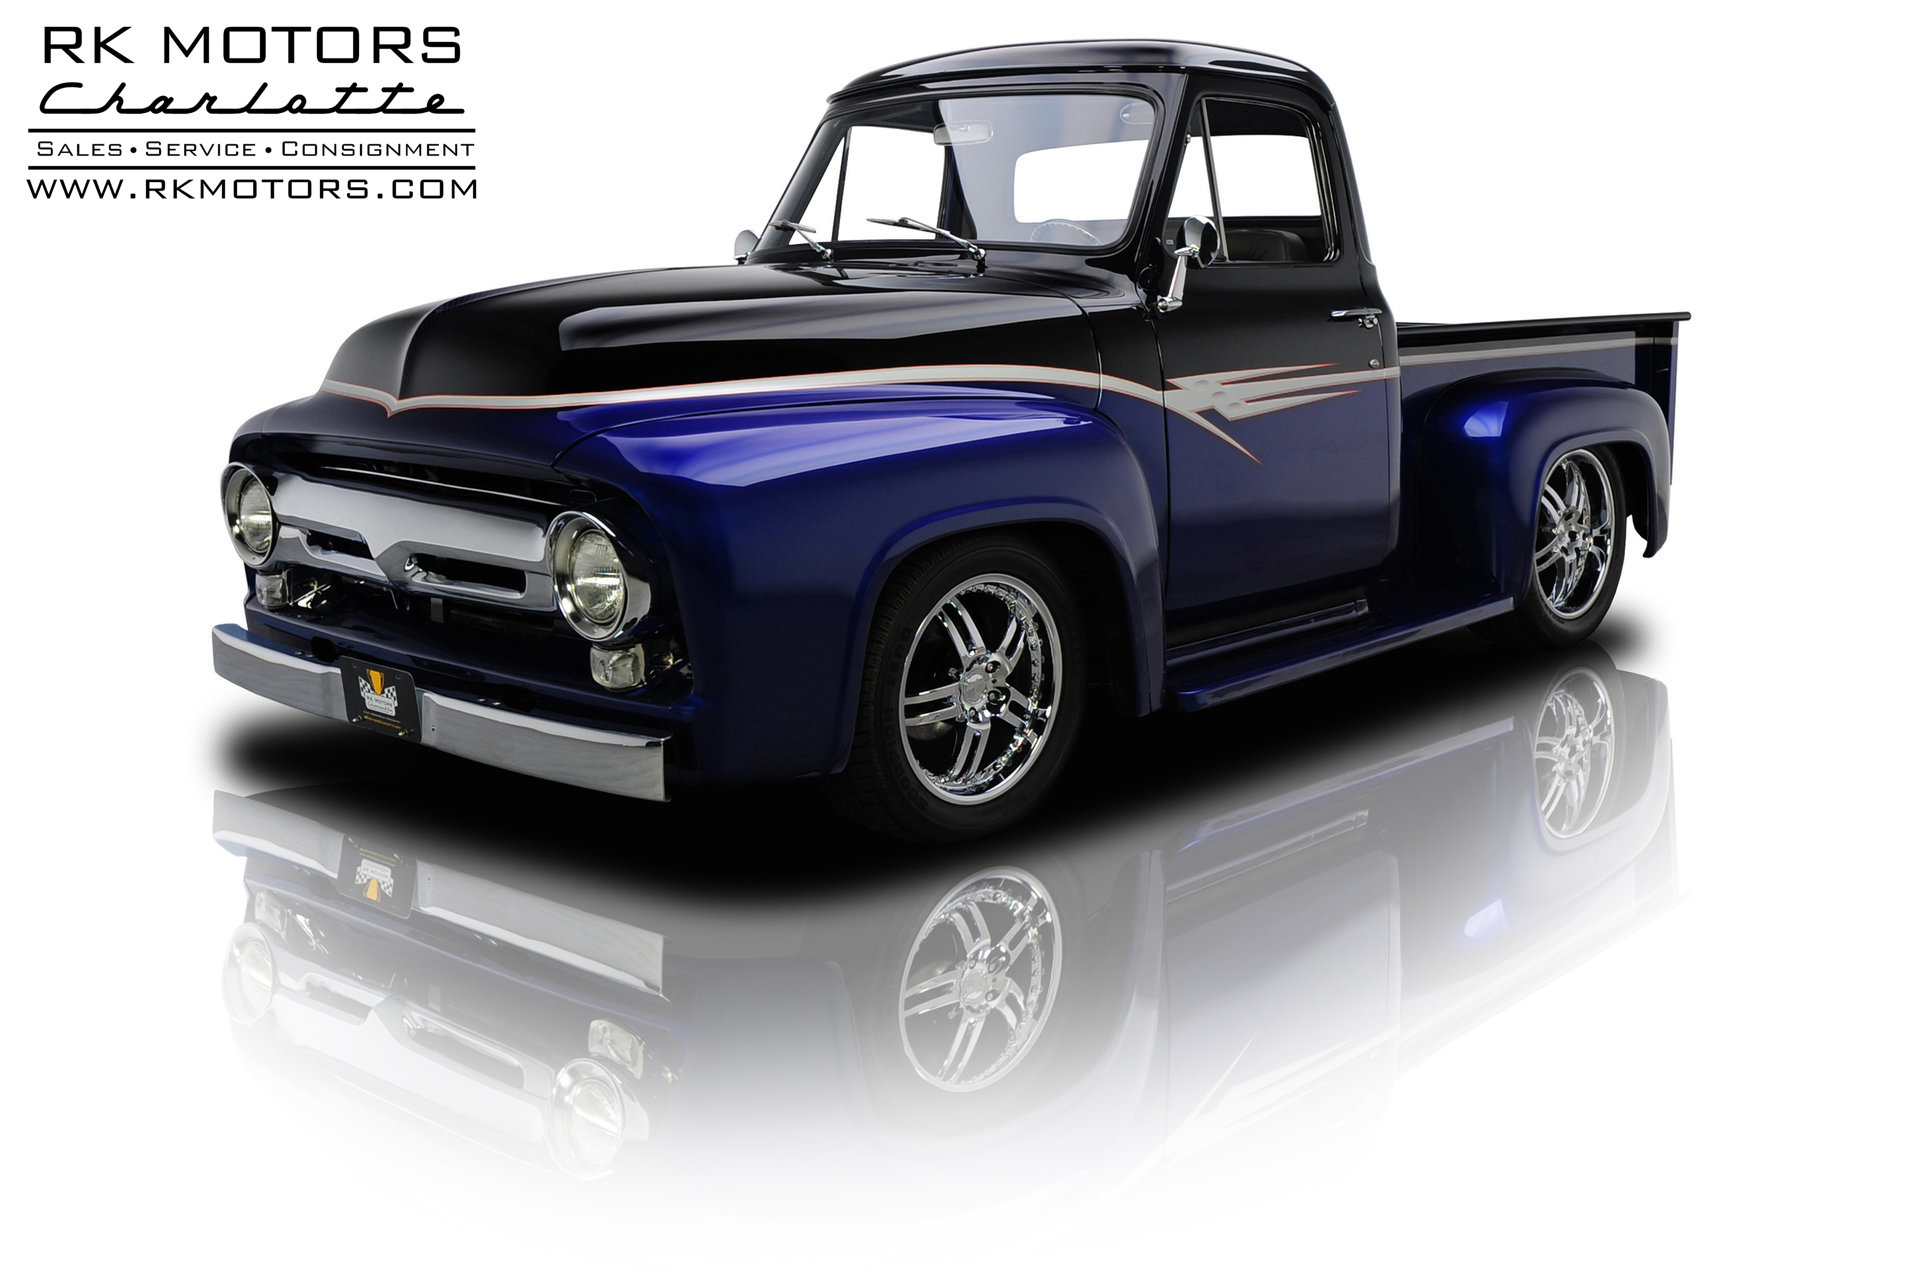 132949 1955 Ford F100 Rk Motors Classic Cars For Sale Interior